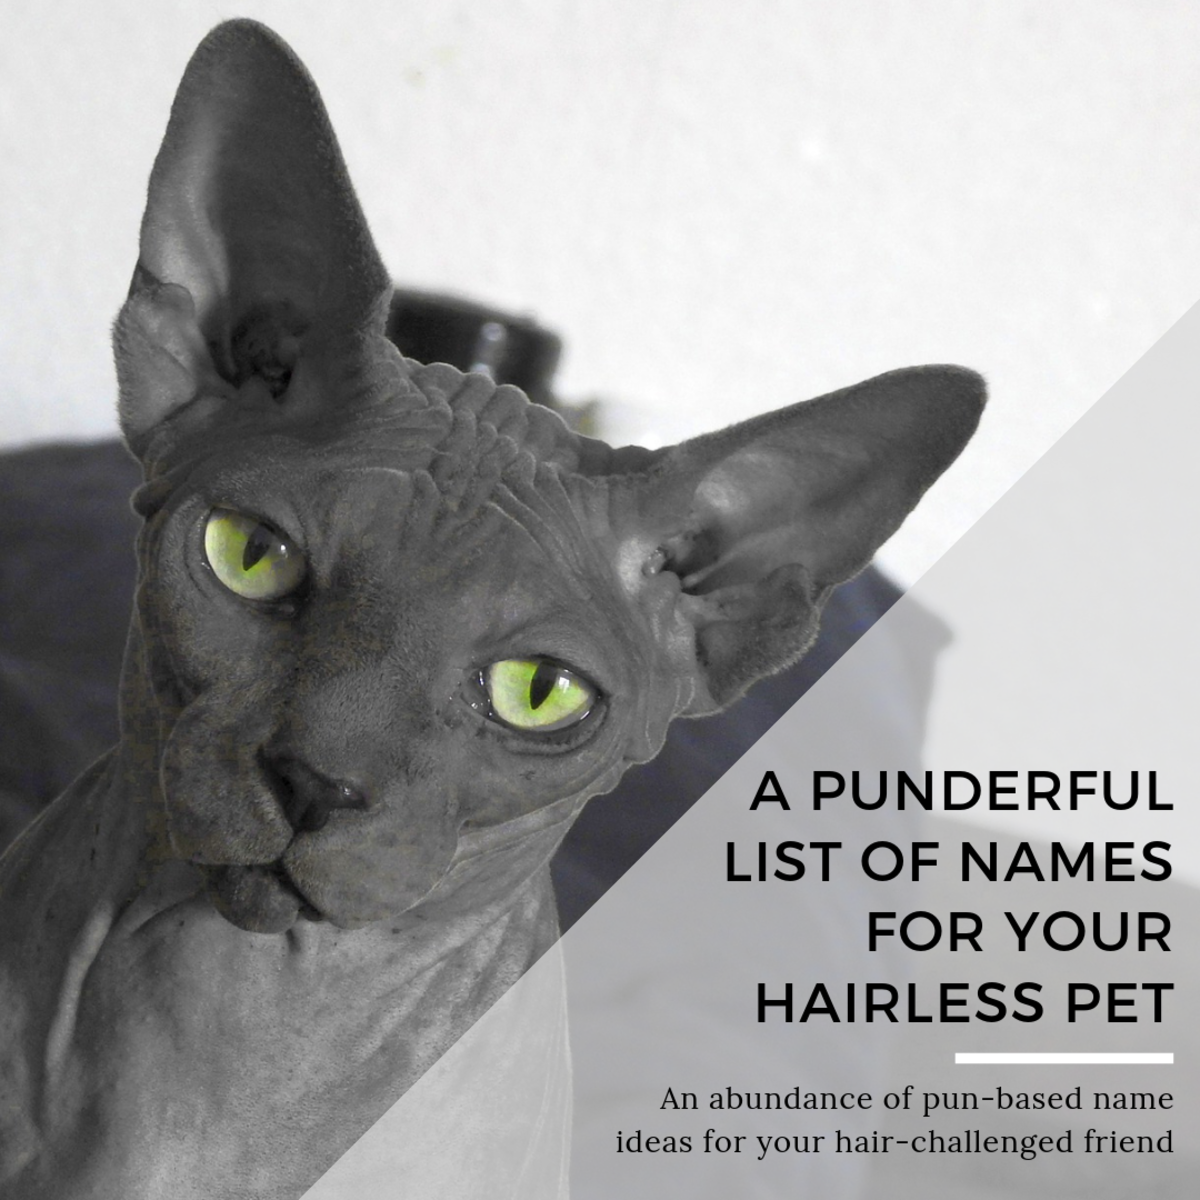 This article will provide a long list of fun, pun-based names for your hairless friend.